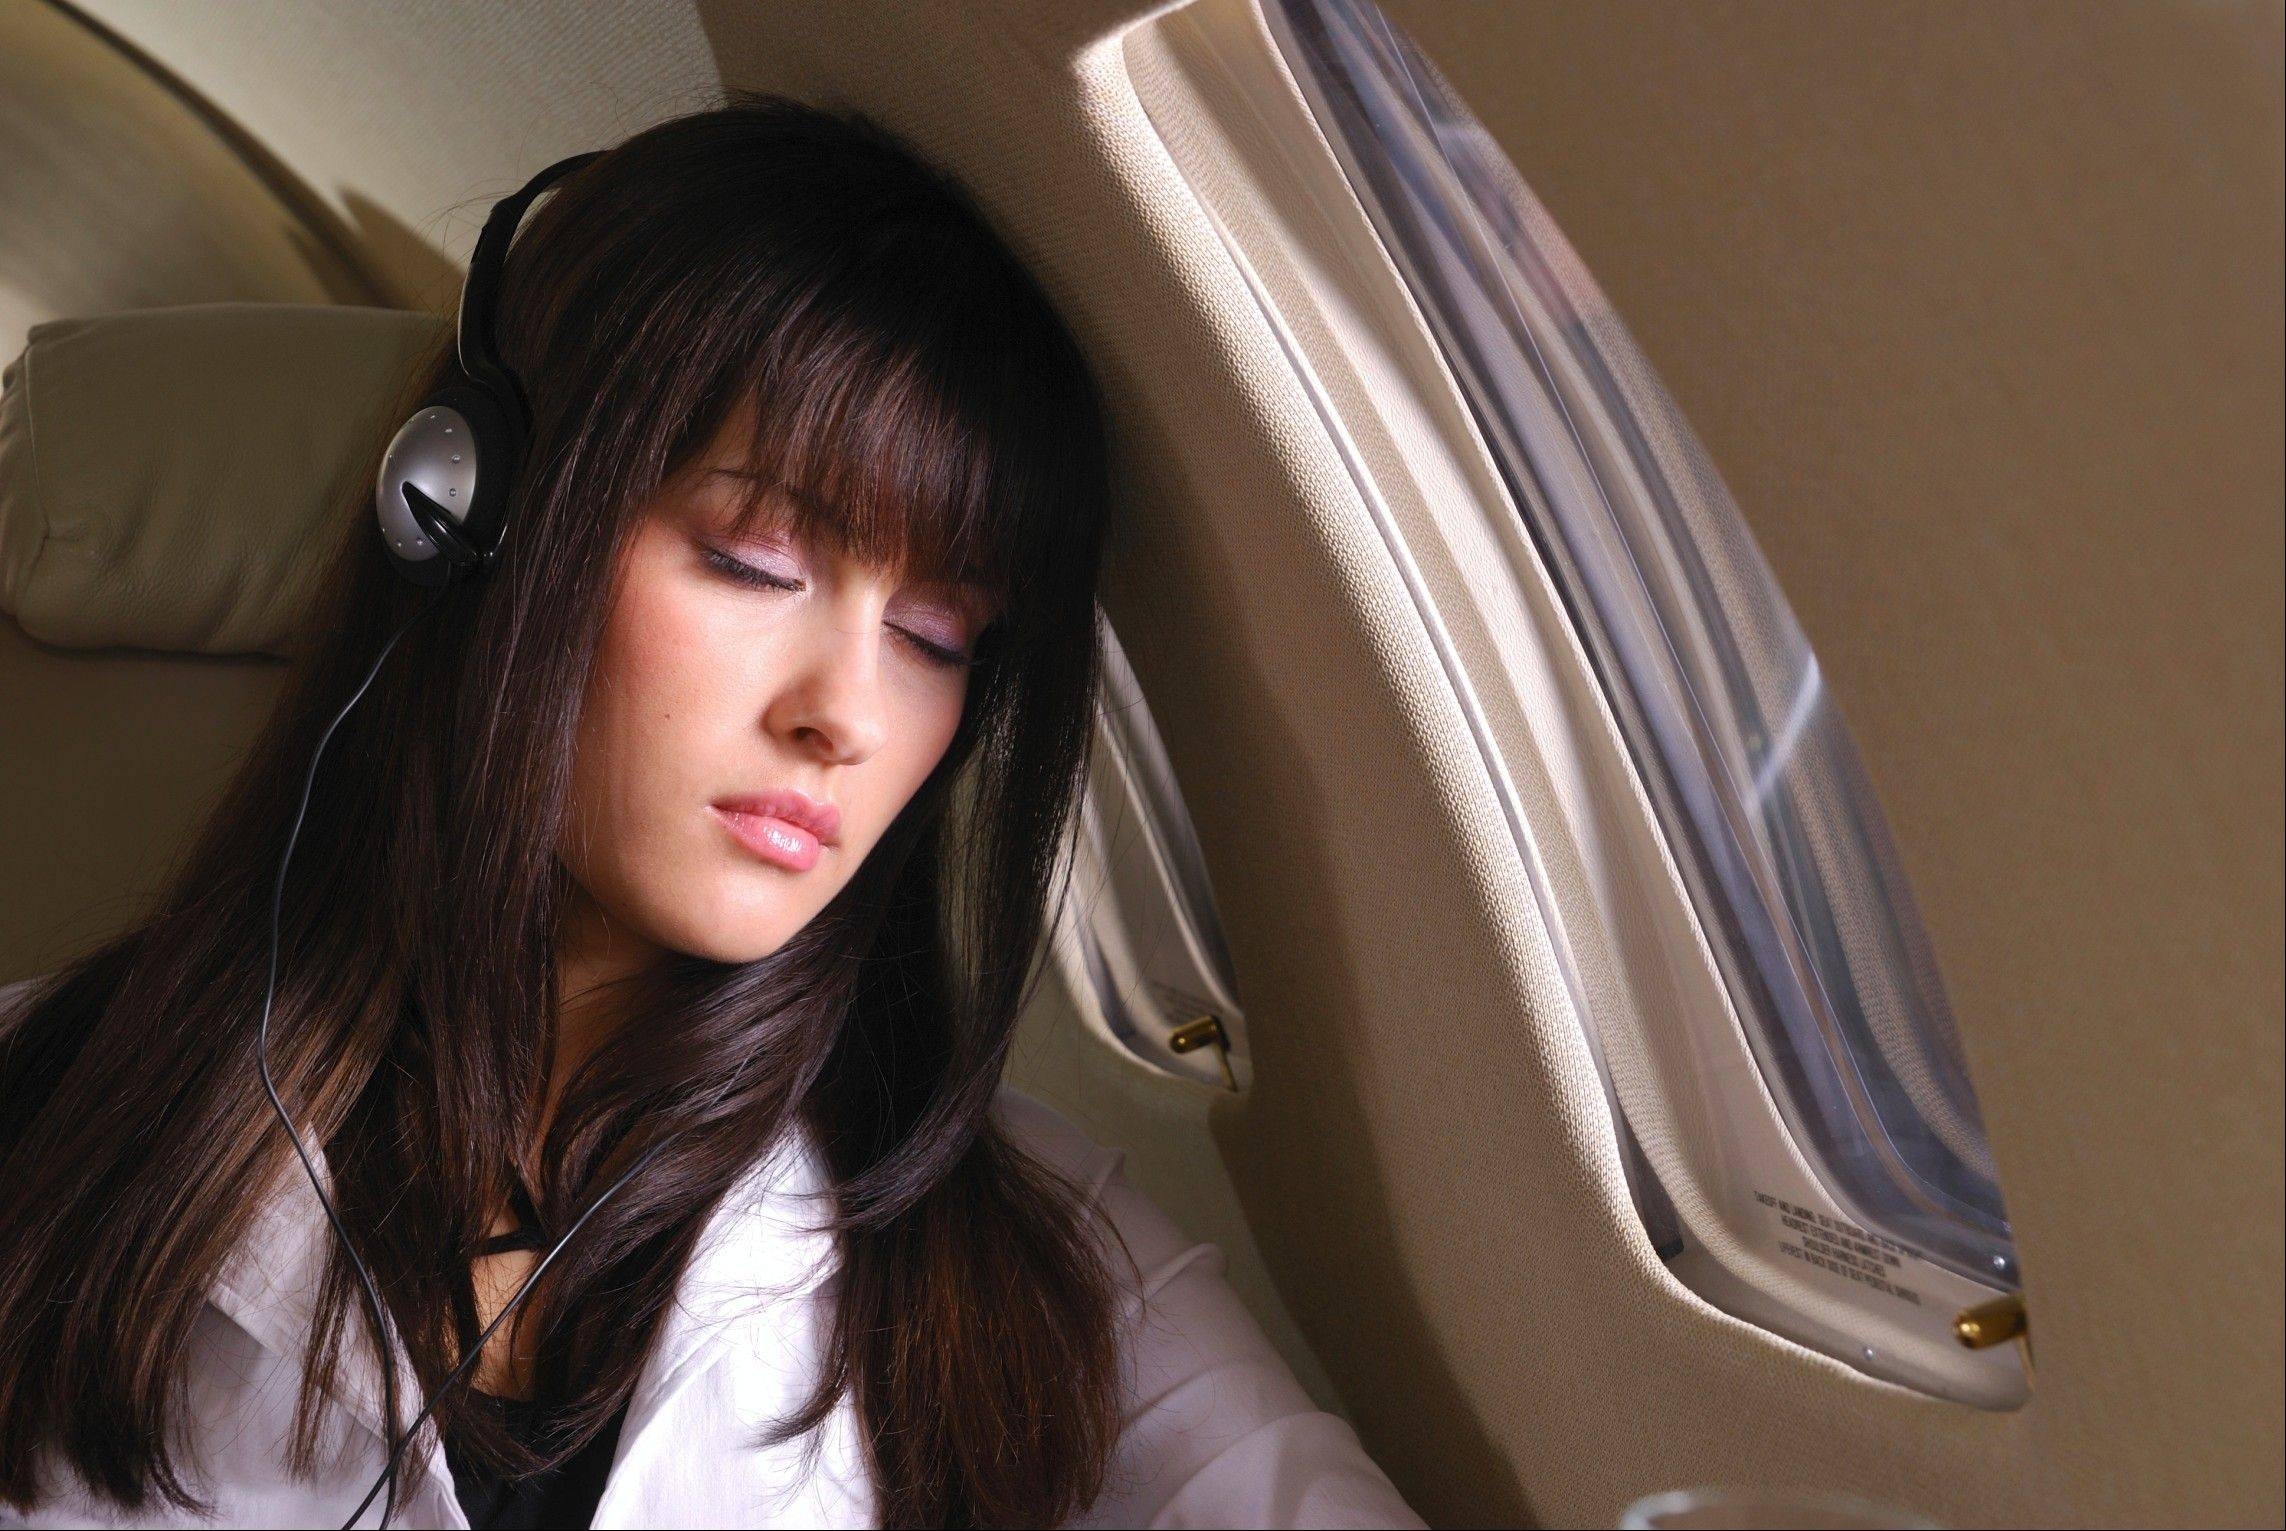 Picking the right seat and listening to music can help put you in the right mode for sleep when flying.